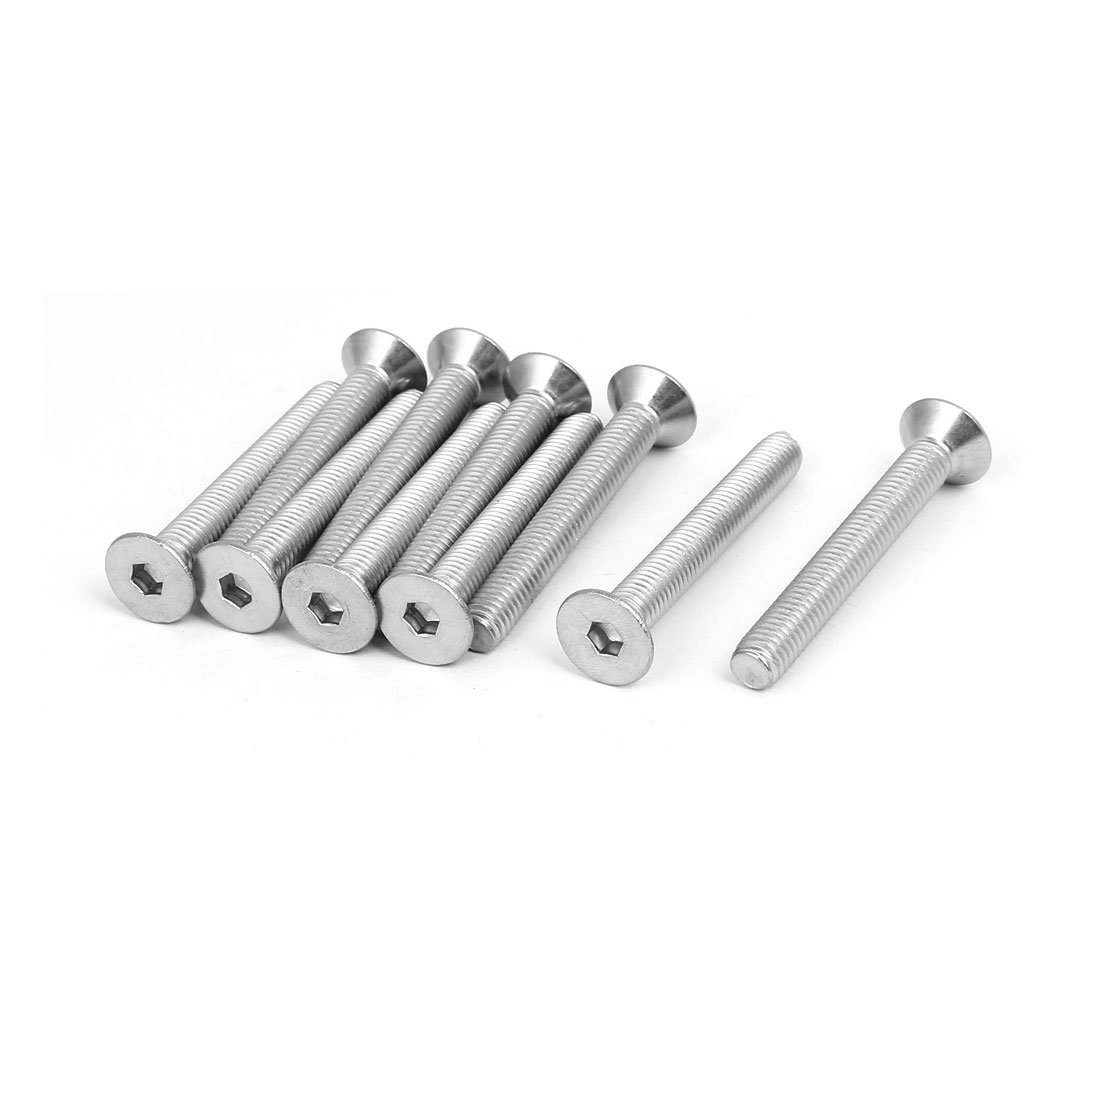 uxcell M8x60mm 304 Stainless Steel Flat Head Hex Socket Cap Screws DIN7991 10pcs by uxcell